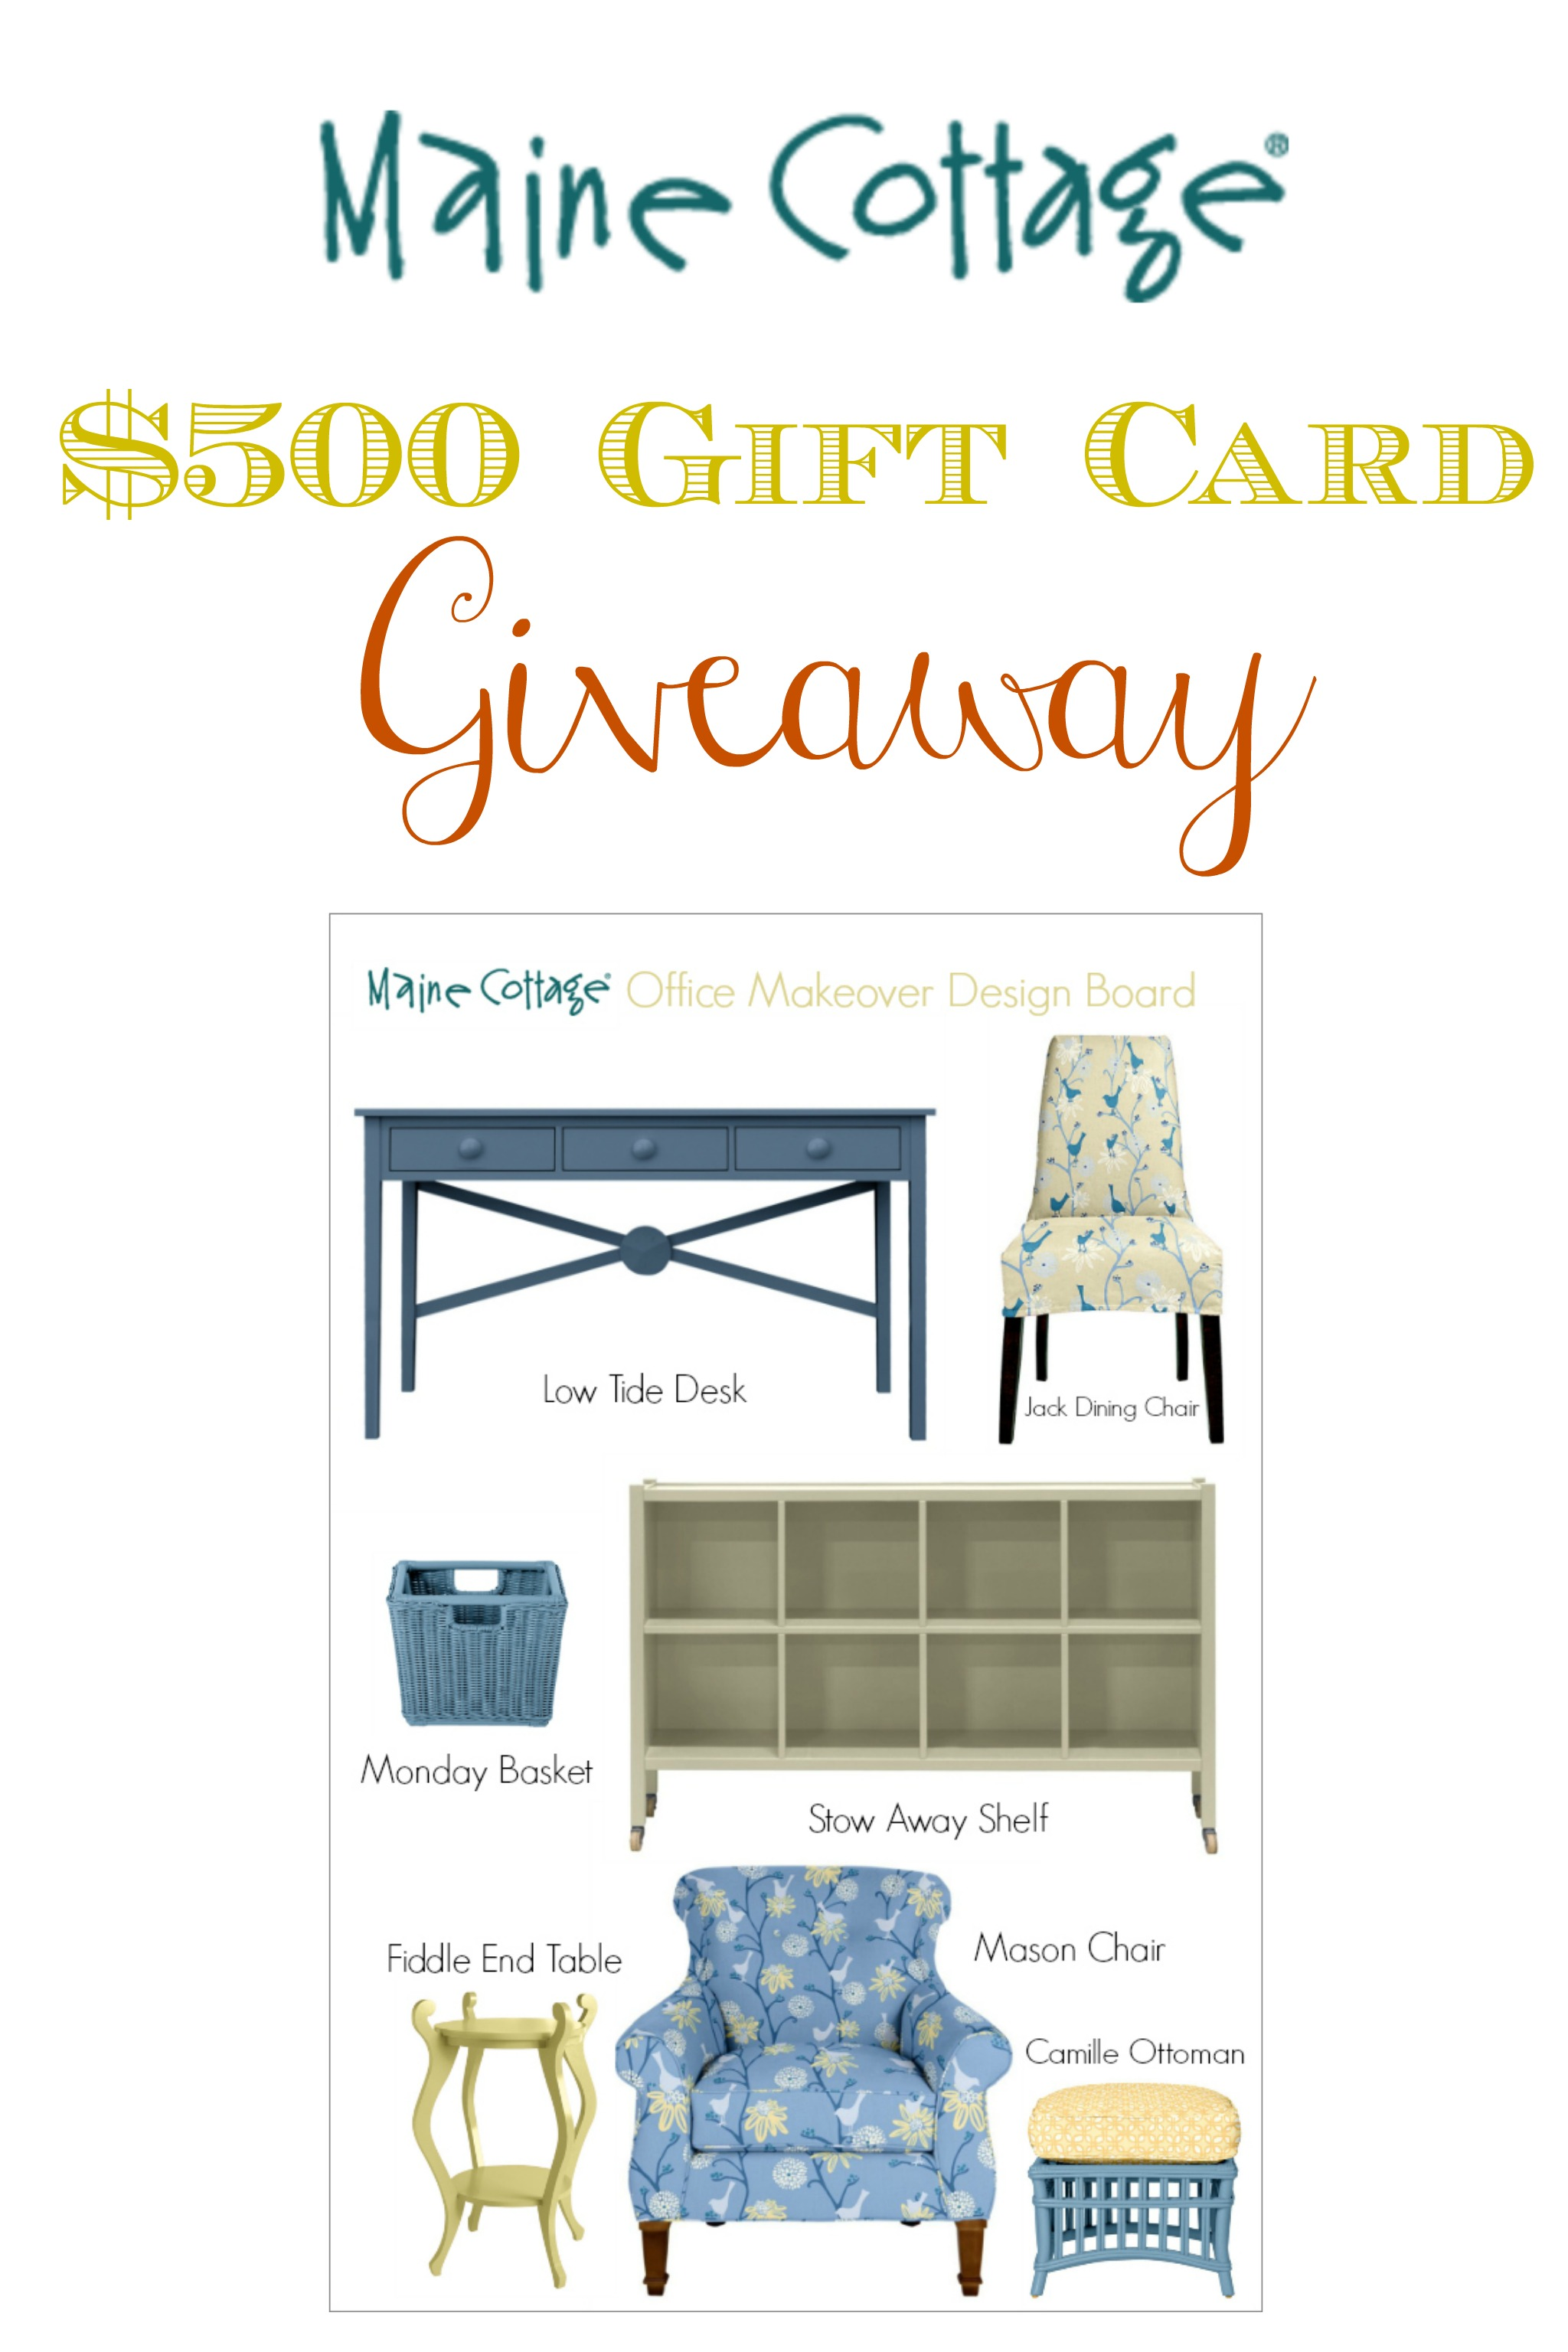 $500 Maine Cottage Gift Card Giveaway